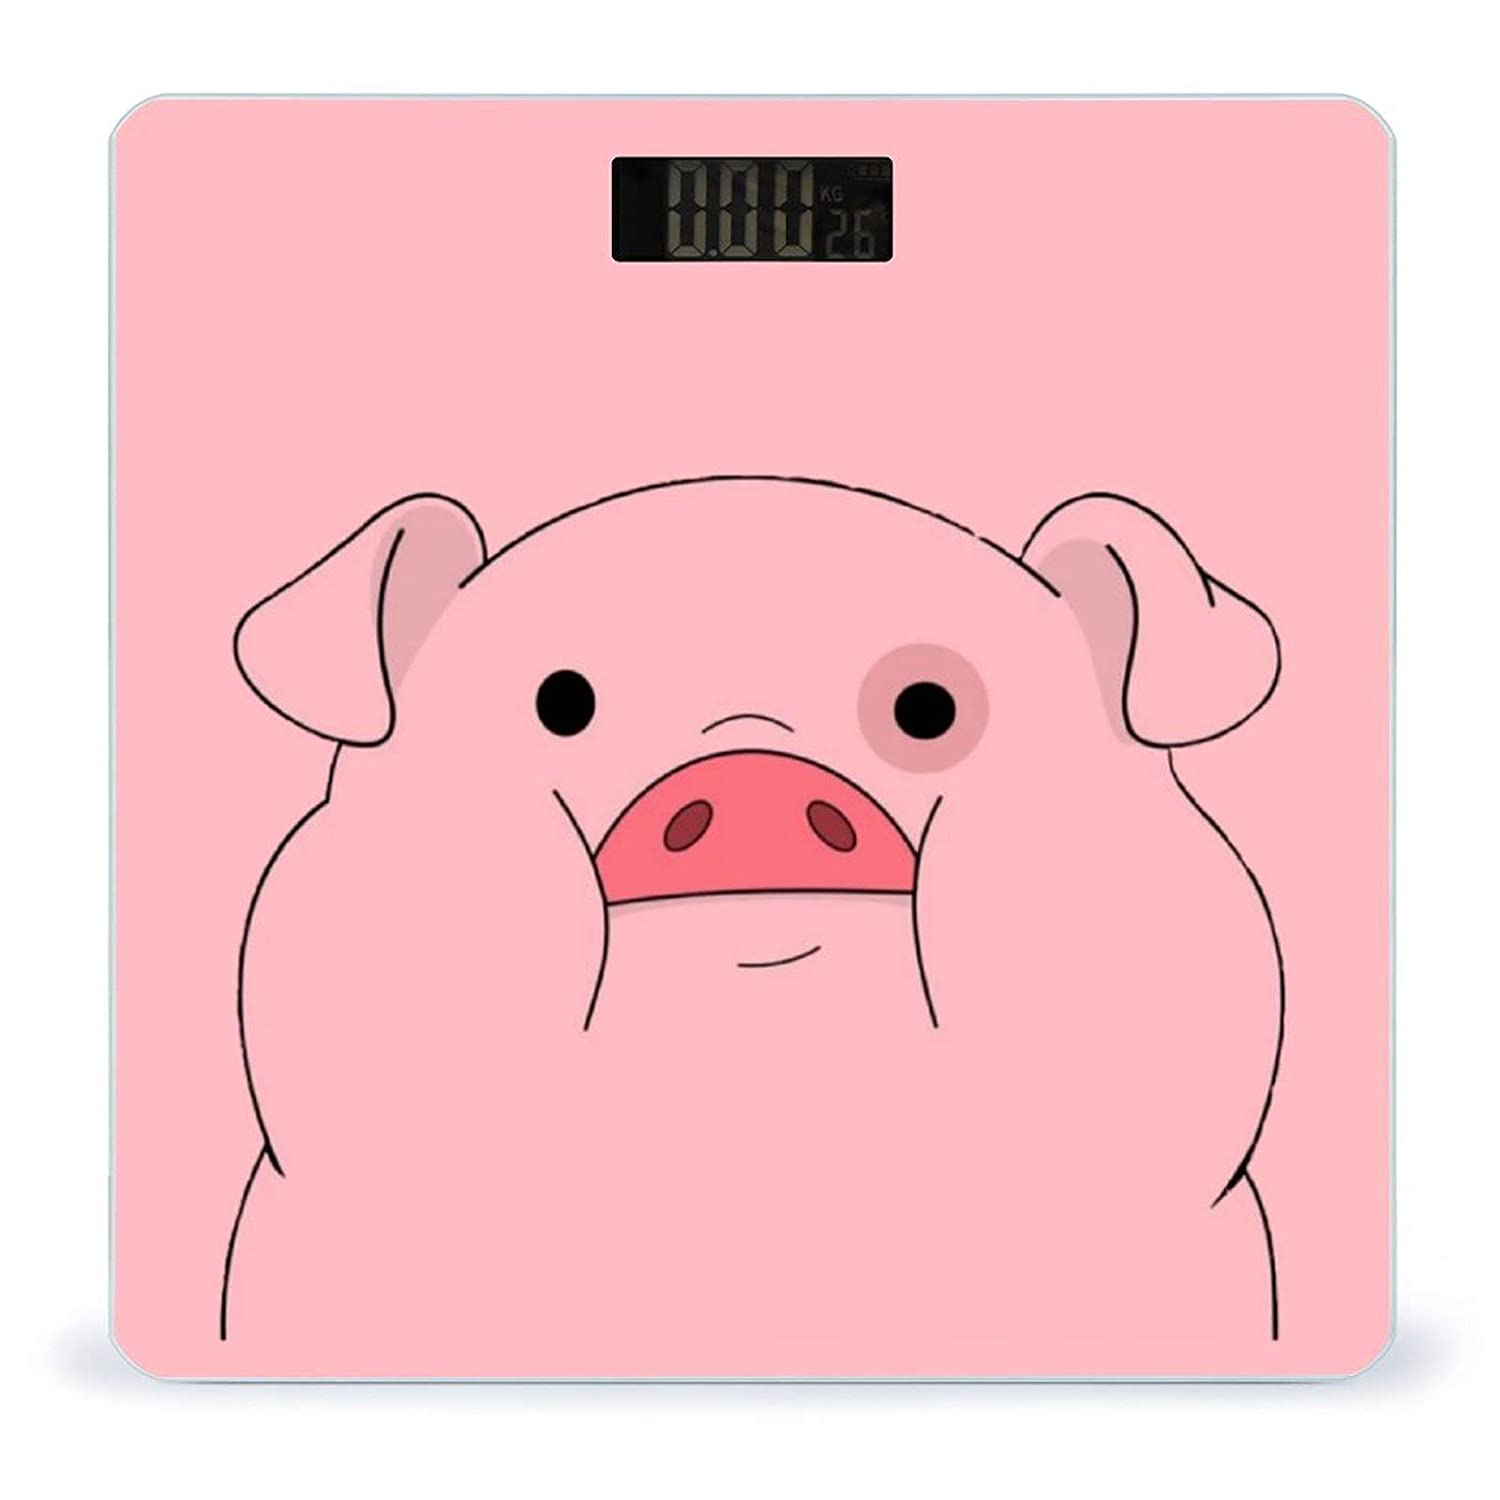 Waddles-Pink PigWeight Scale Digital Direct stock discount Over item handling ☆ Battery-Powered Digita Body